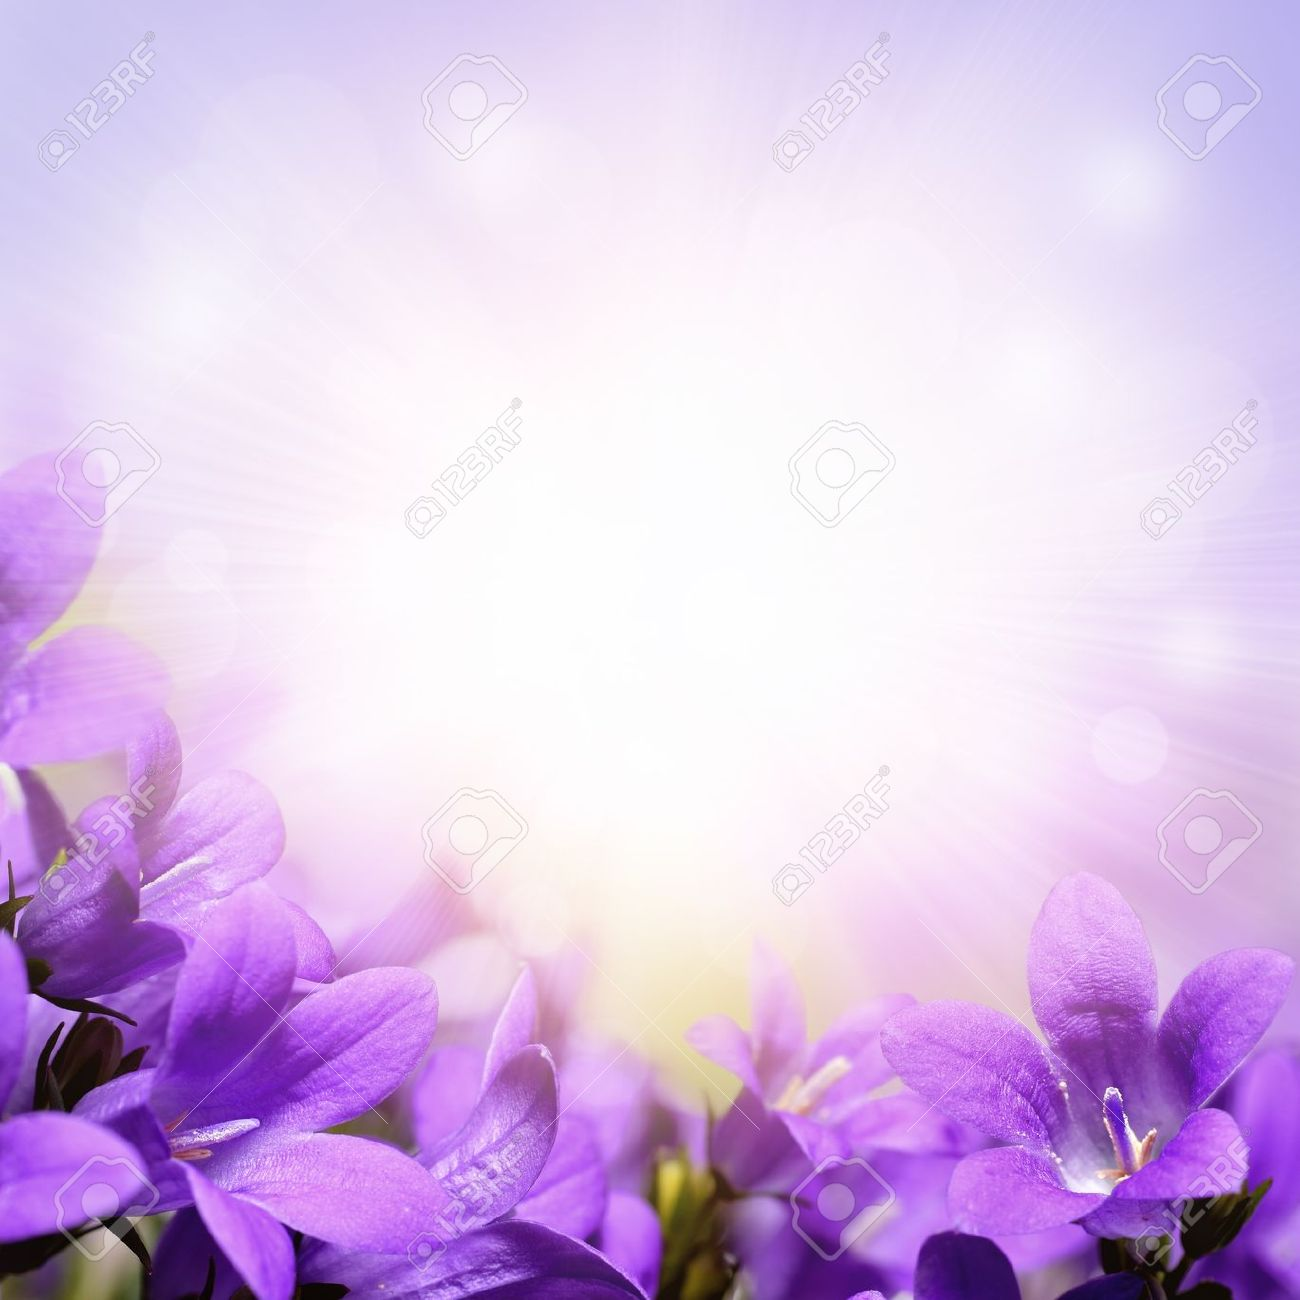 purple flower background design